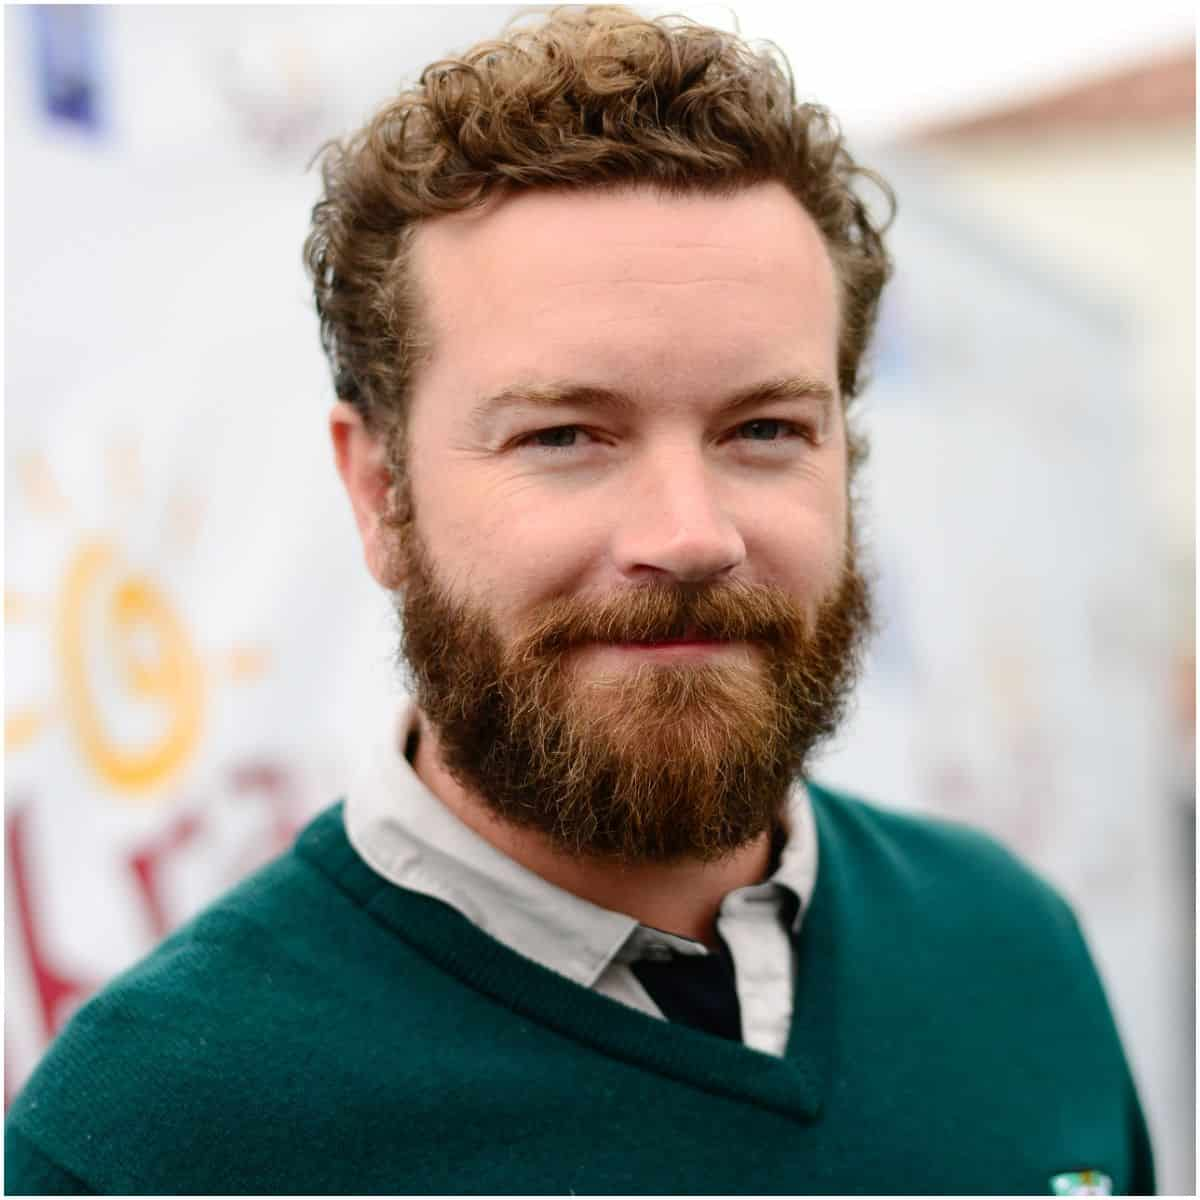 what is the net worth of Danny Masterson